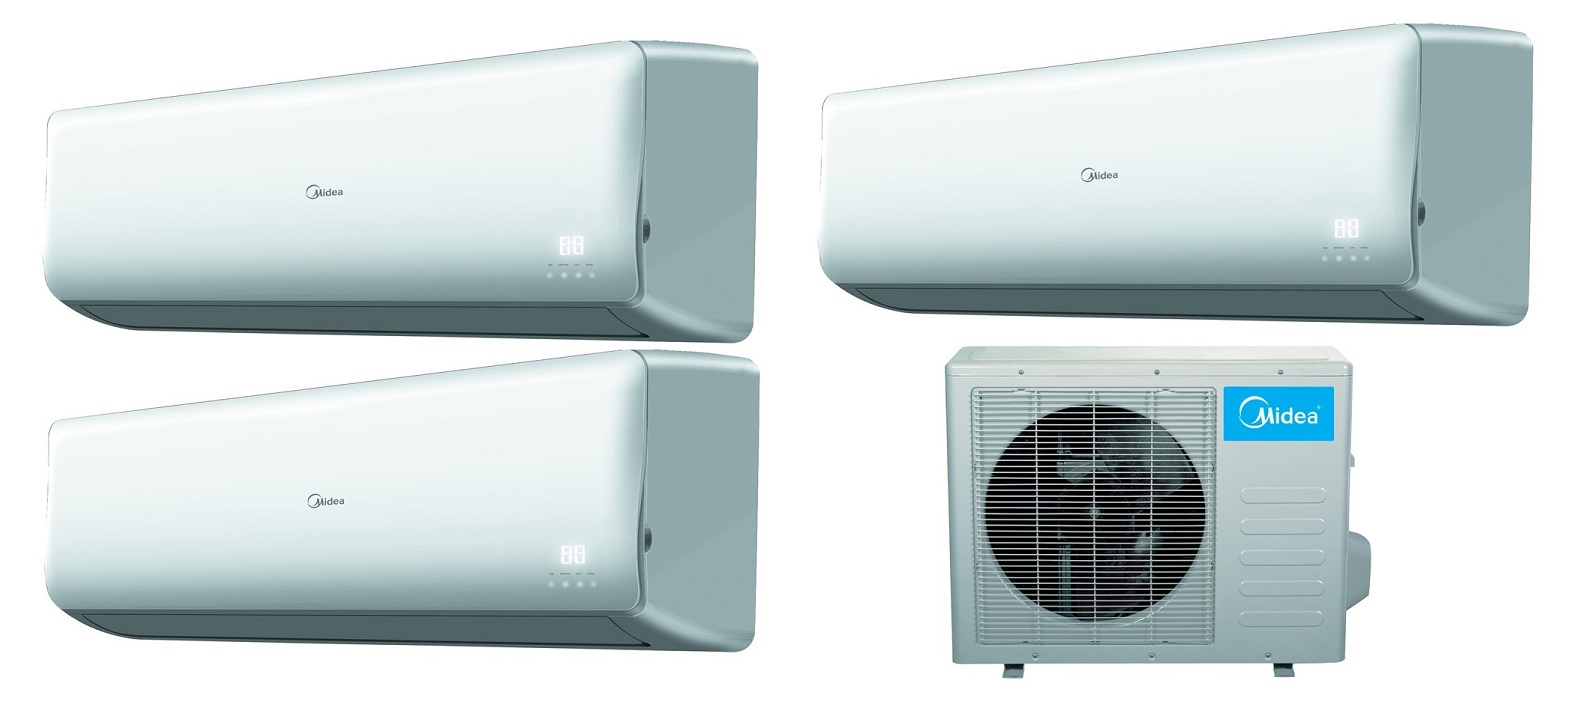 Midea 21 4 seer 3x12000btu 3 zone mini split heat pump ac for 1800 btu window air conditioner